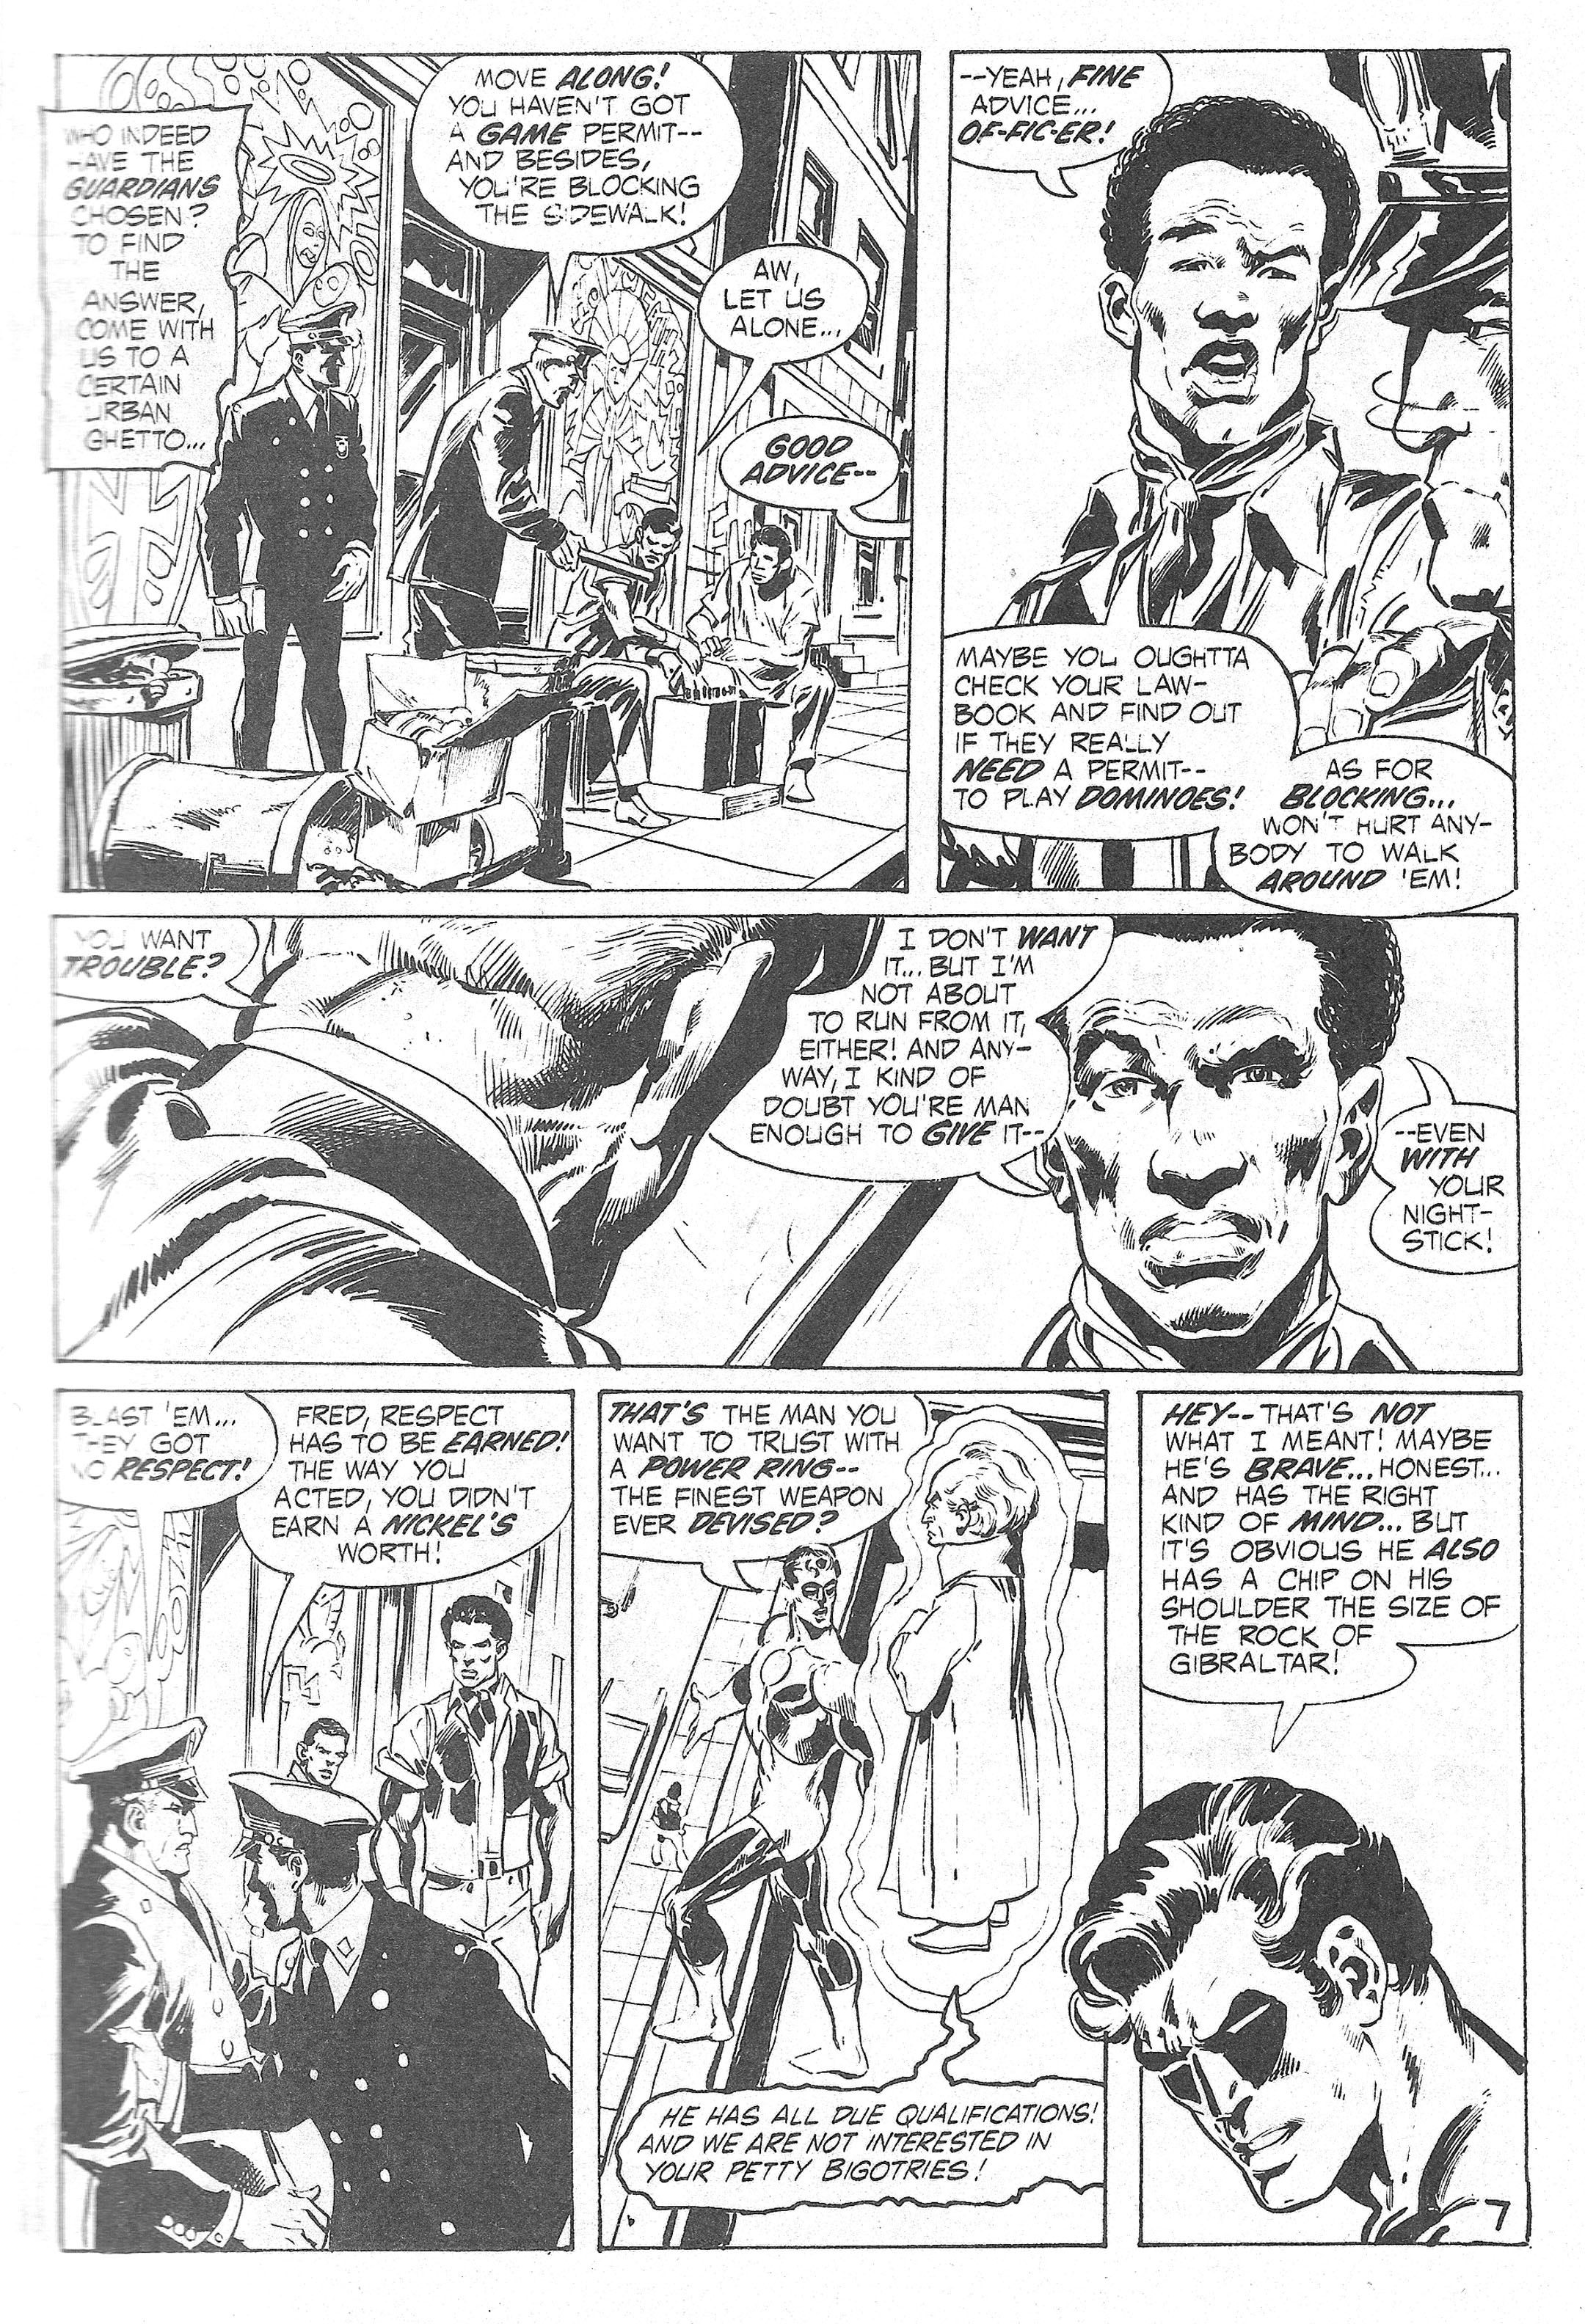 Green lantern in beware my power penciled by neal adams and inked by dick giordano pg 5